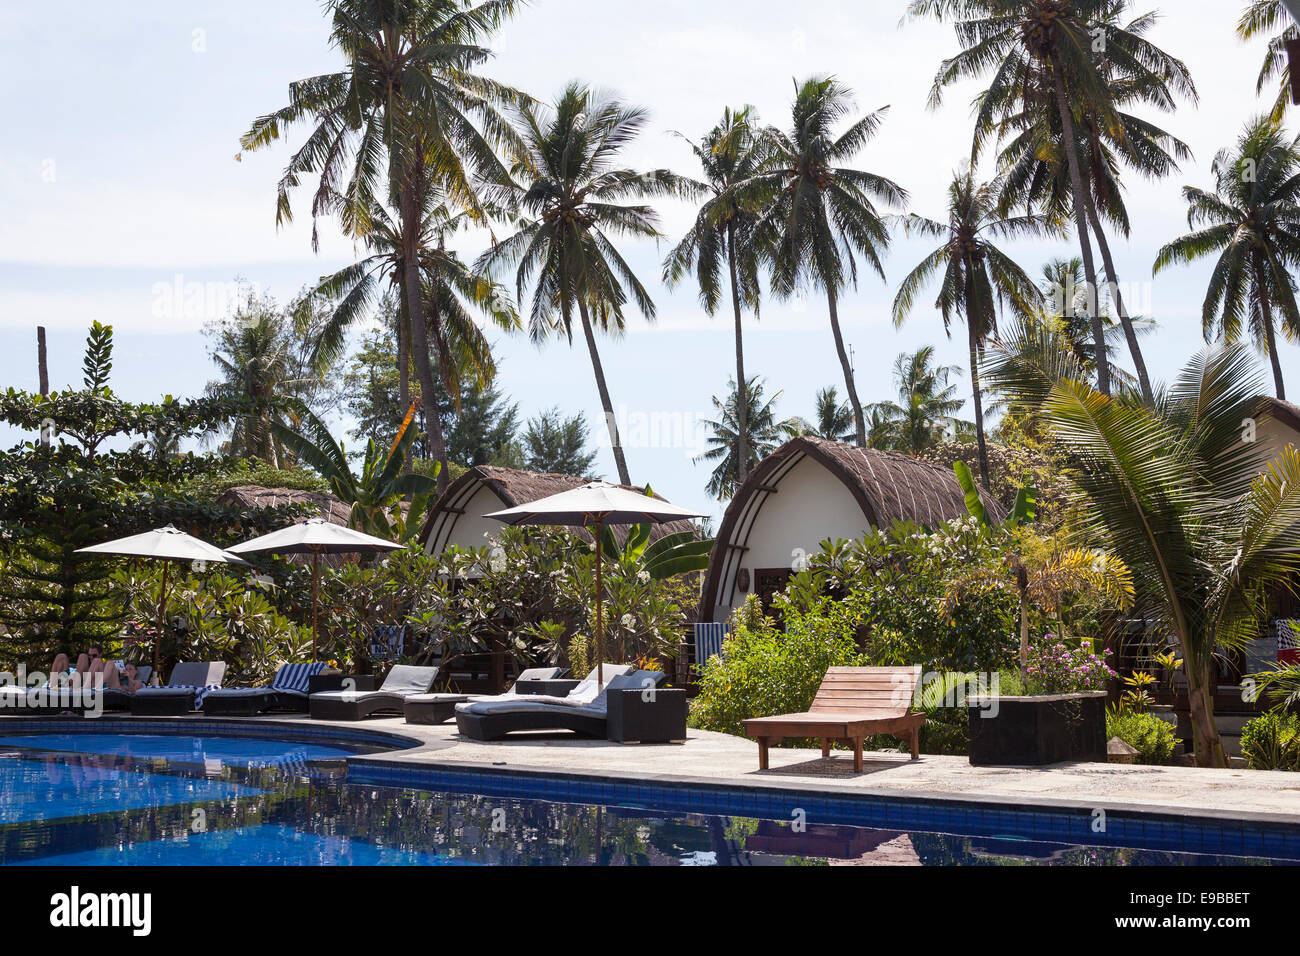 Hotel pool, 'Gili Air', 'Gili Islands', Lombok, Indonesia - Stock Image